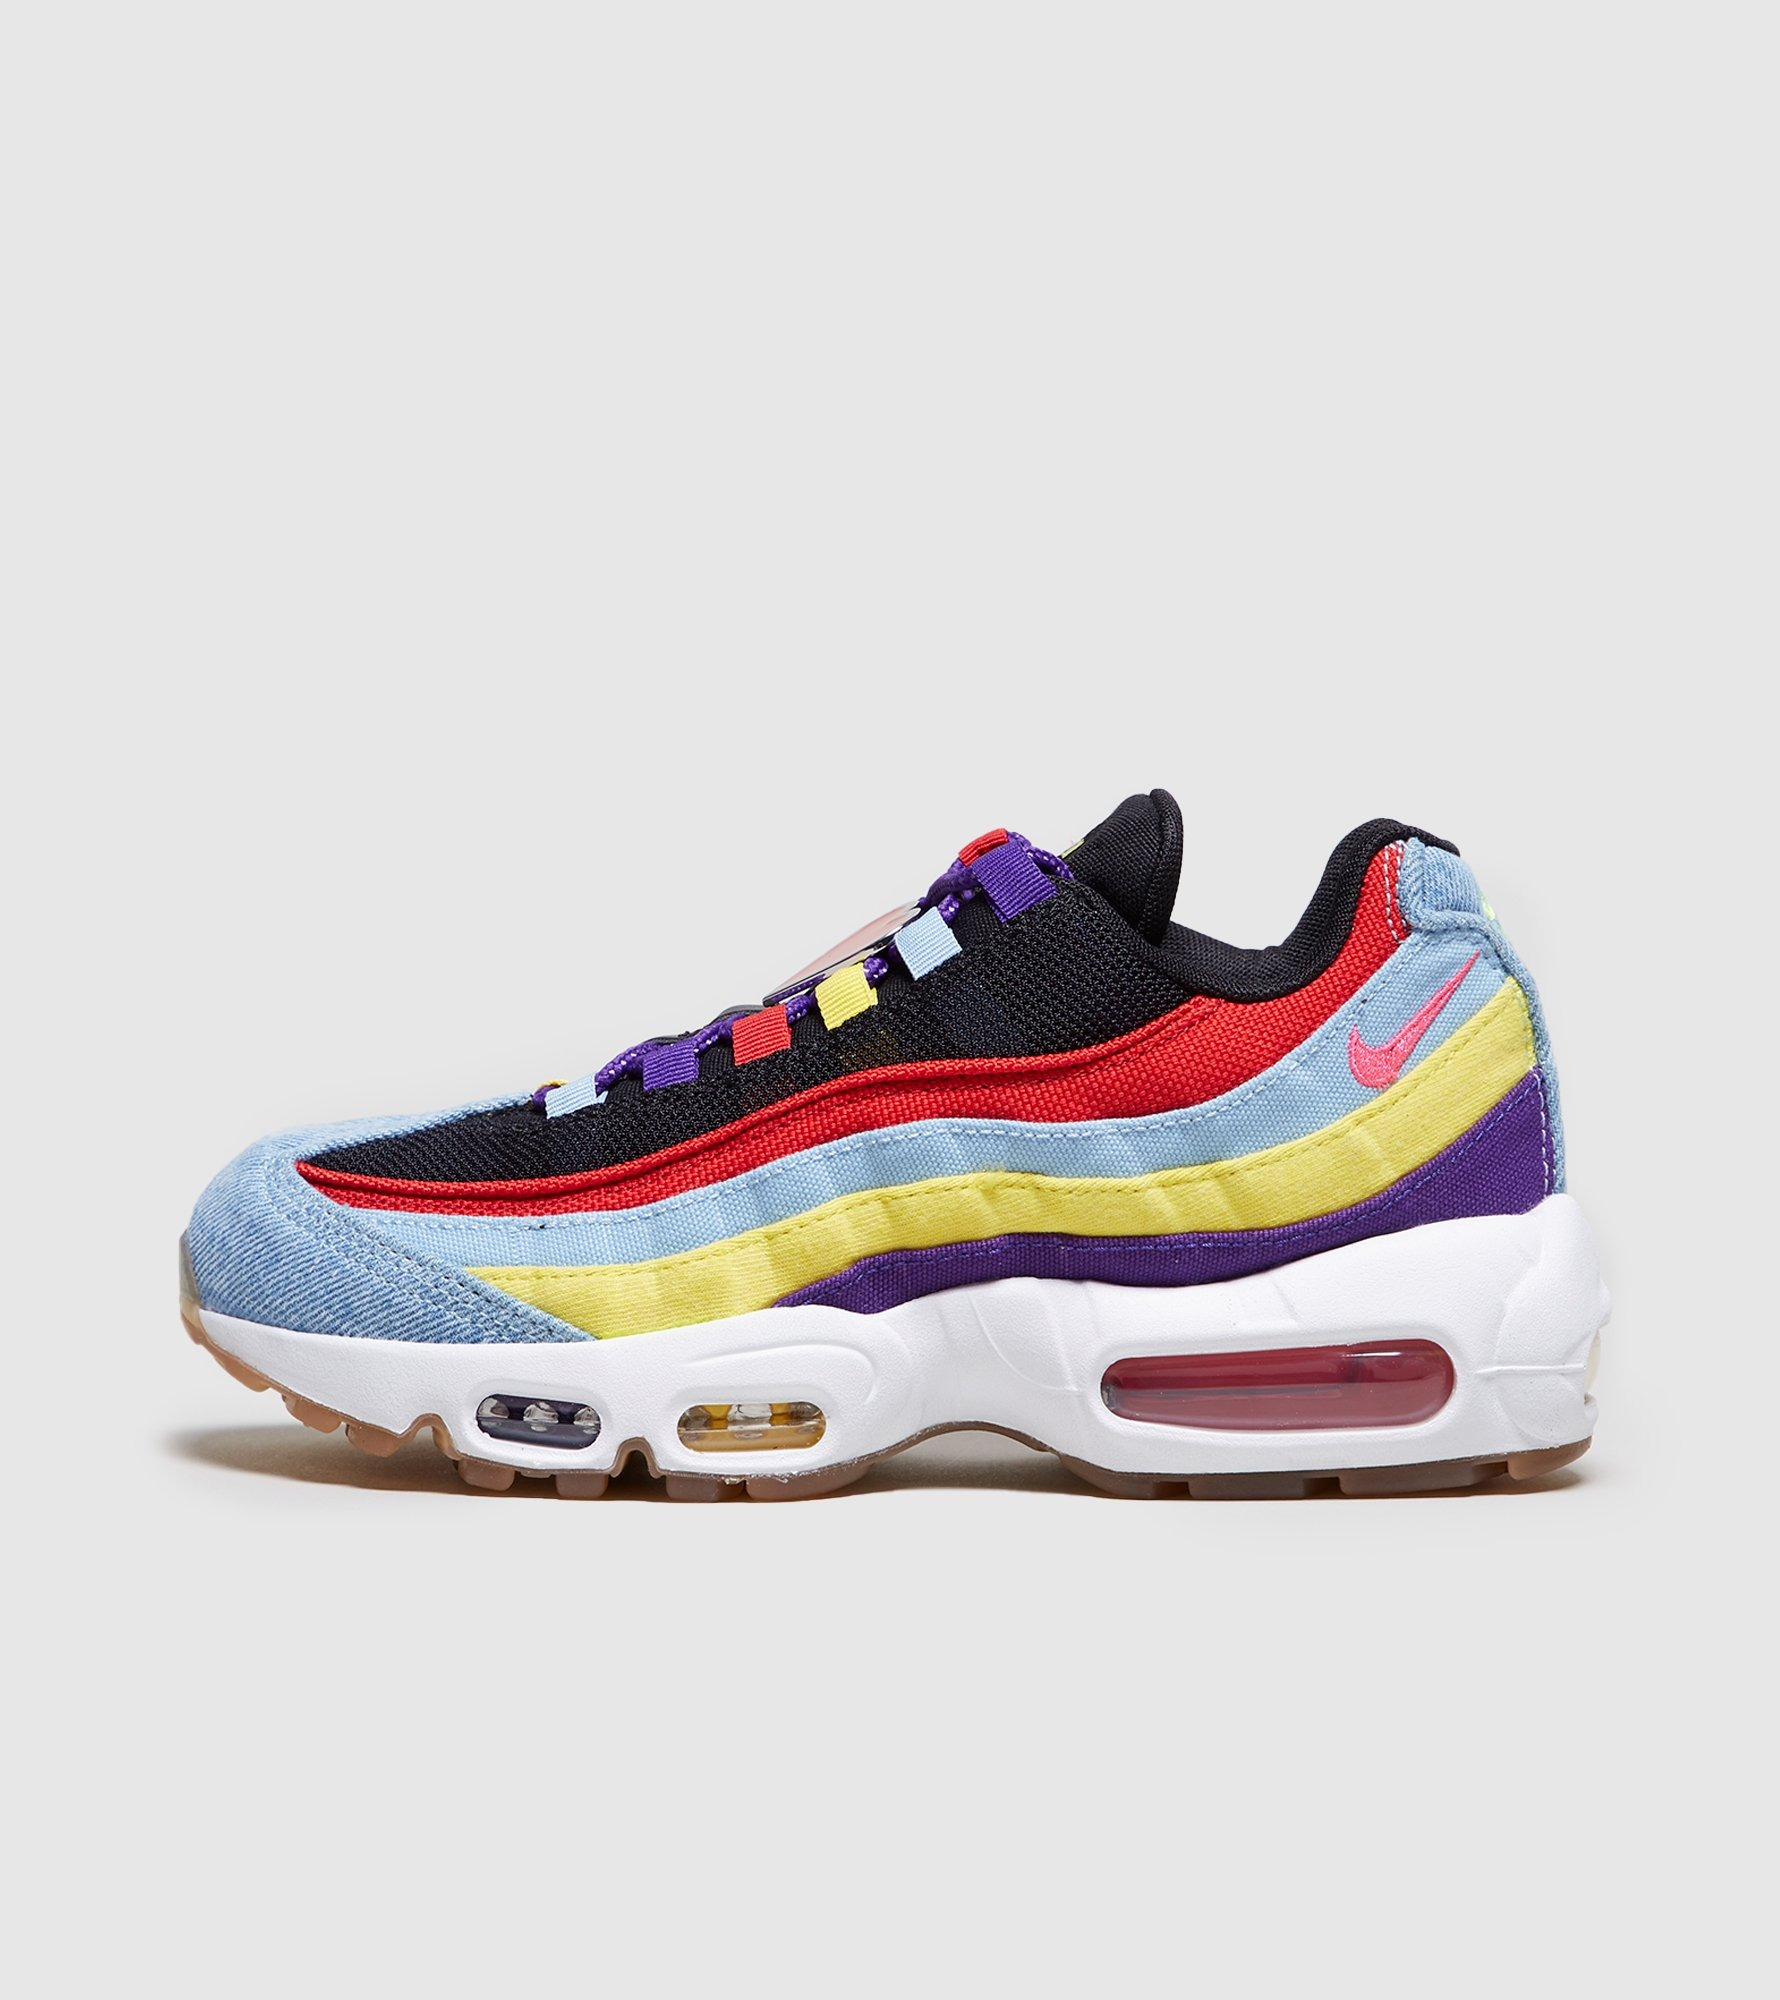 Nike Air Max 95 QS SP Frauen | Size?